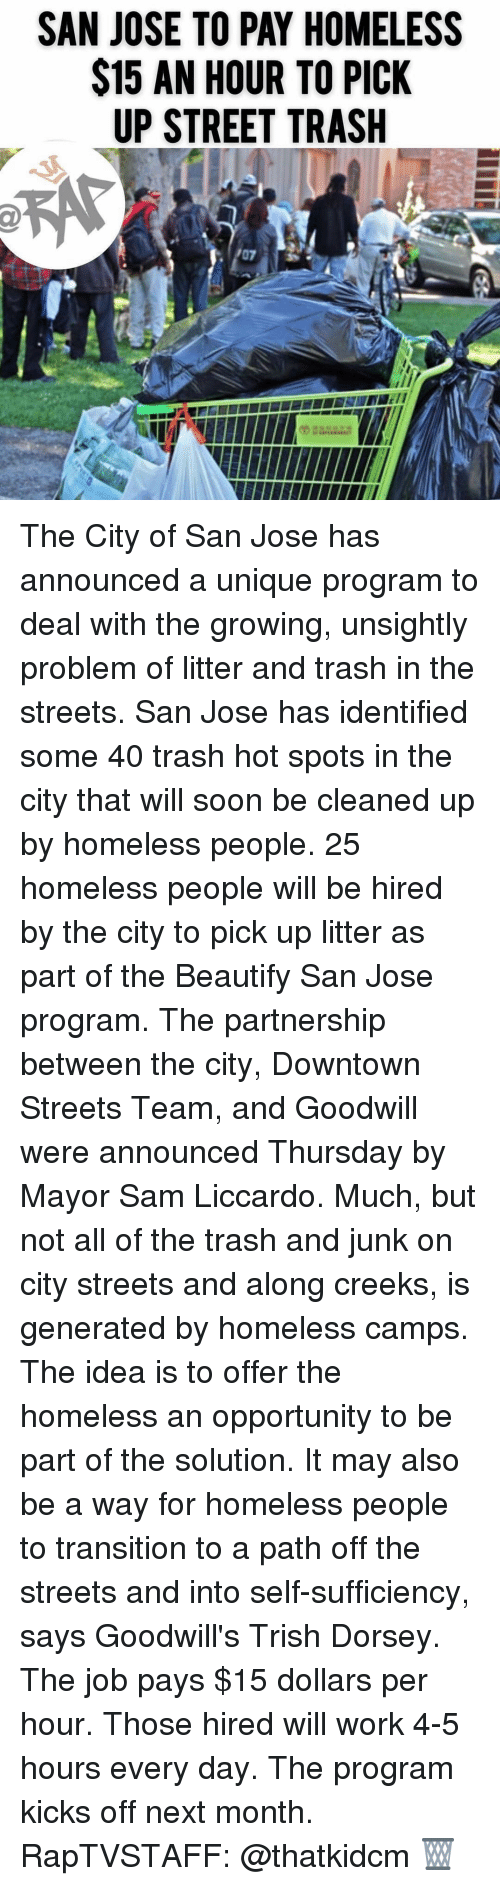 goodwill: SAN JOSE TO PAY HOMELESS  $15 AN HOUR TO PICK  UP STREET TRASH The City of San Jose has announced a unique program to deal with the growing, unsightly problem of litter and trash in the streets. San Jose has identified some 40 trash hot spots in the city that will soon be cleaned up by homeless people. 25 homeless people will be hired by the city to pick up litter as part of the Beautify San Jose program. The partnership between the city, Downtown Streets Team, and Goodwill were announced Thursday by Mayor Sam Liccardo. Much, but not all of the trash and junk on city streets and along creeks, is generated by homeless camps. The idea is to offer the homeless an opportunity to be part of the solution. It may also be a way for homeless people to transition to a path off the streets and into self-sufficiency, says Goodwill's Trish Dorsey. The job pays $15 dollars per hour. Those hired will work 4-5 hours every day. The program kicks off next month. RapTVSTAFF: @thatkidcm 🗑